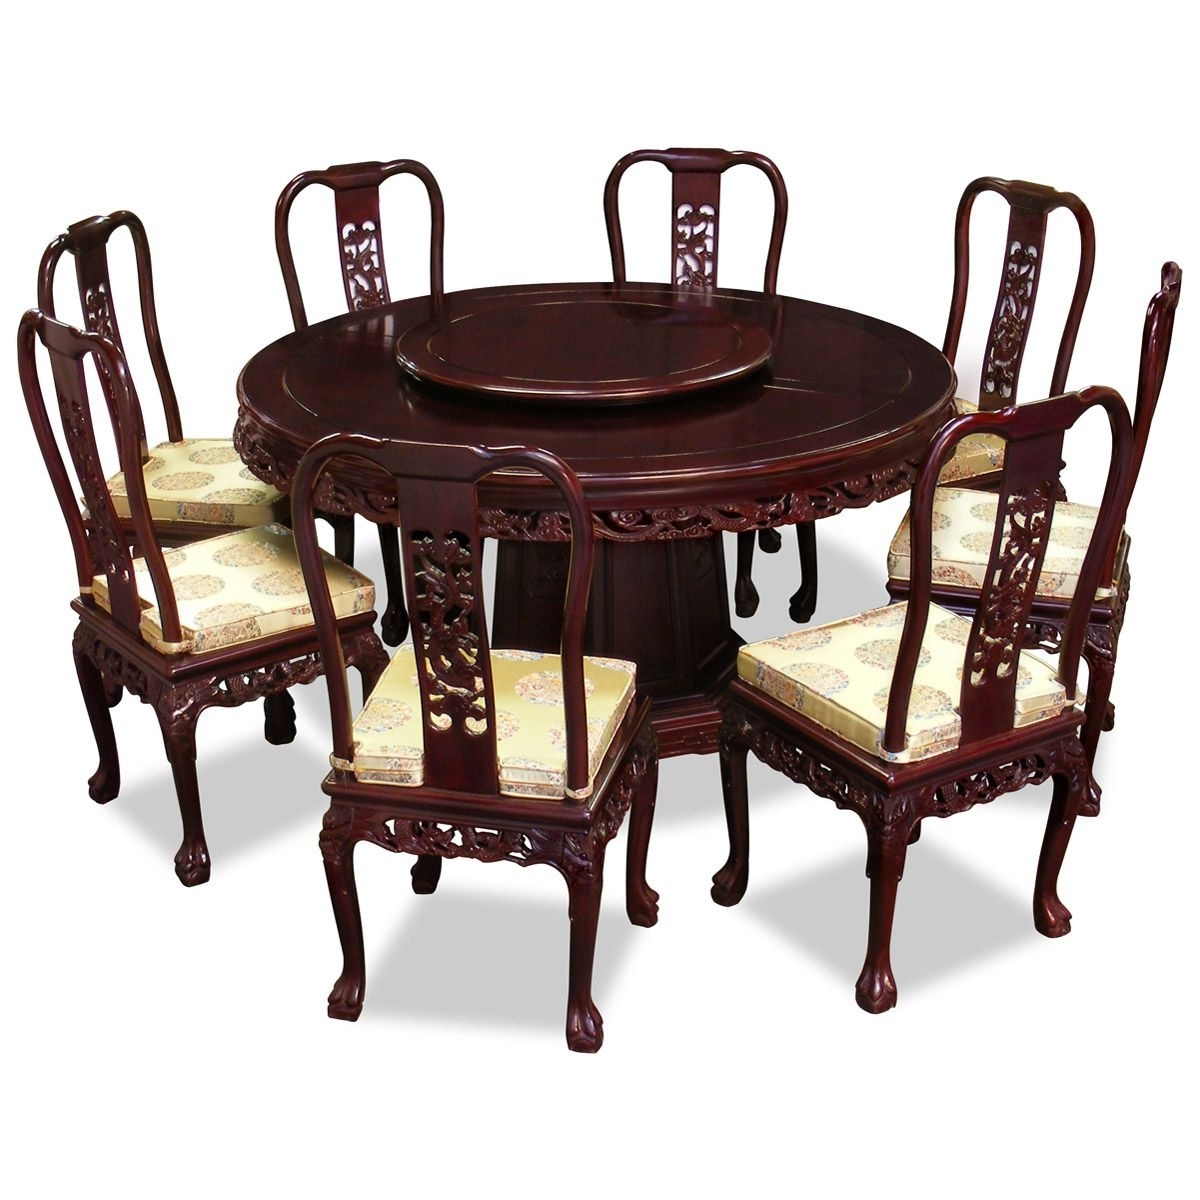 60In Rosewood Imperial Dragon Design Round Dining Table With 8 Throughout Well Liked Imperial Dining Tables (View 16 of 25)